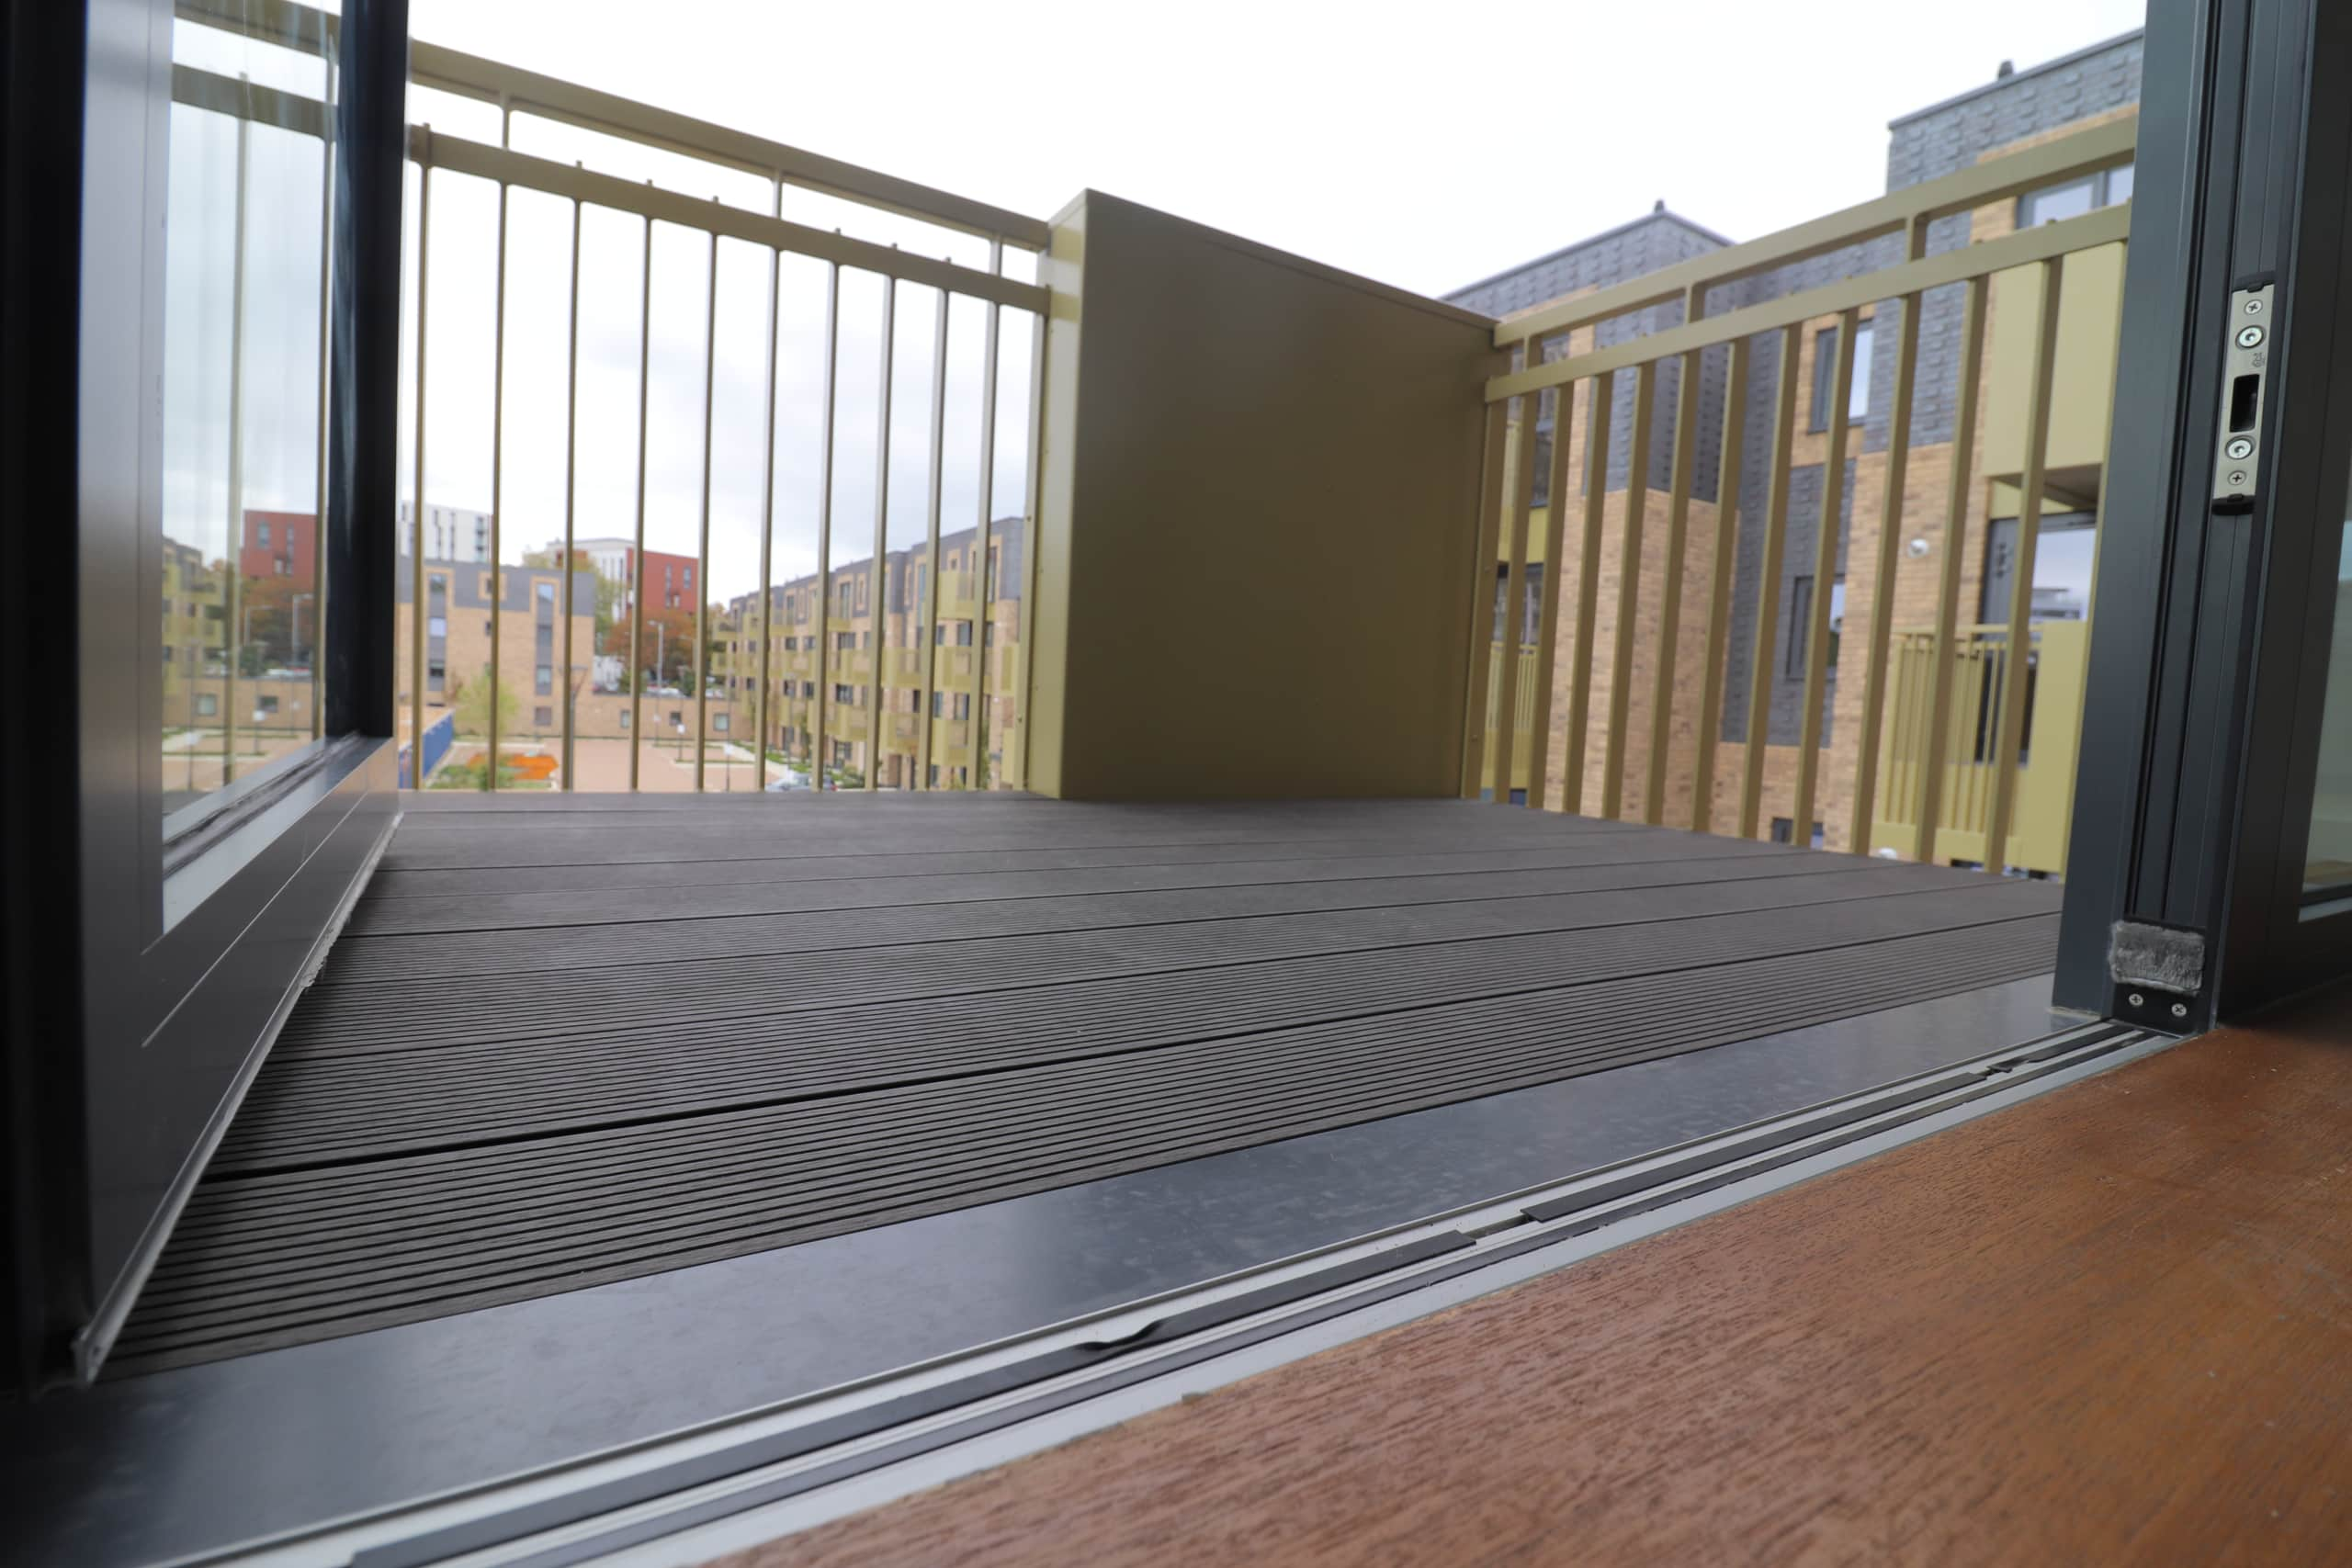 Designing Balconies for Disabled People